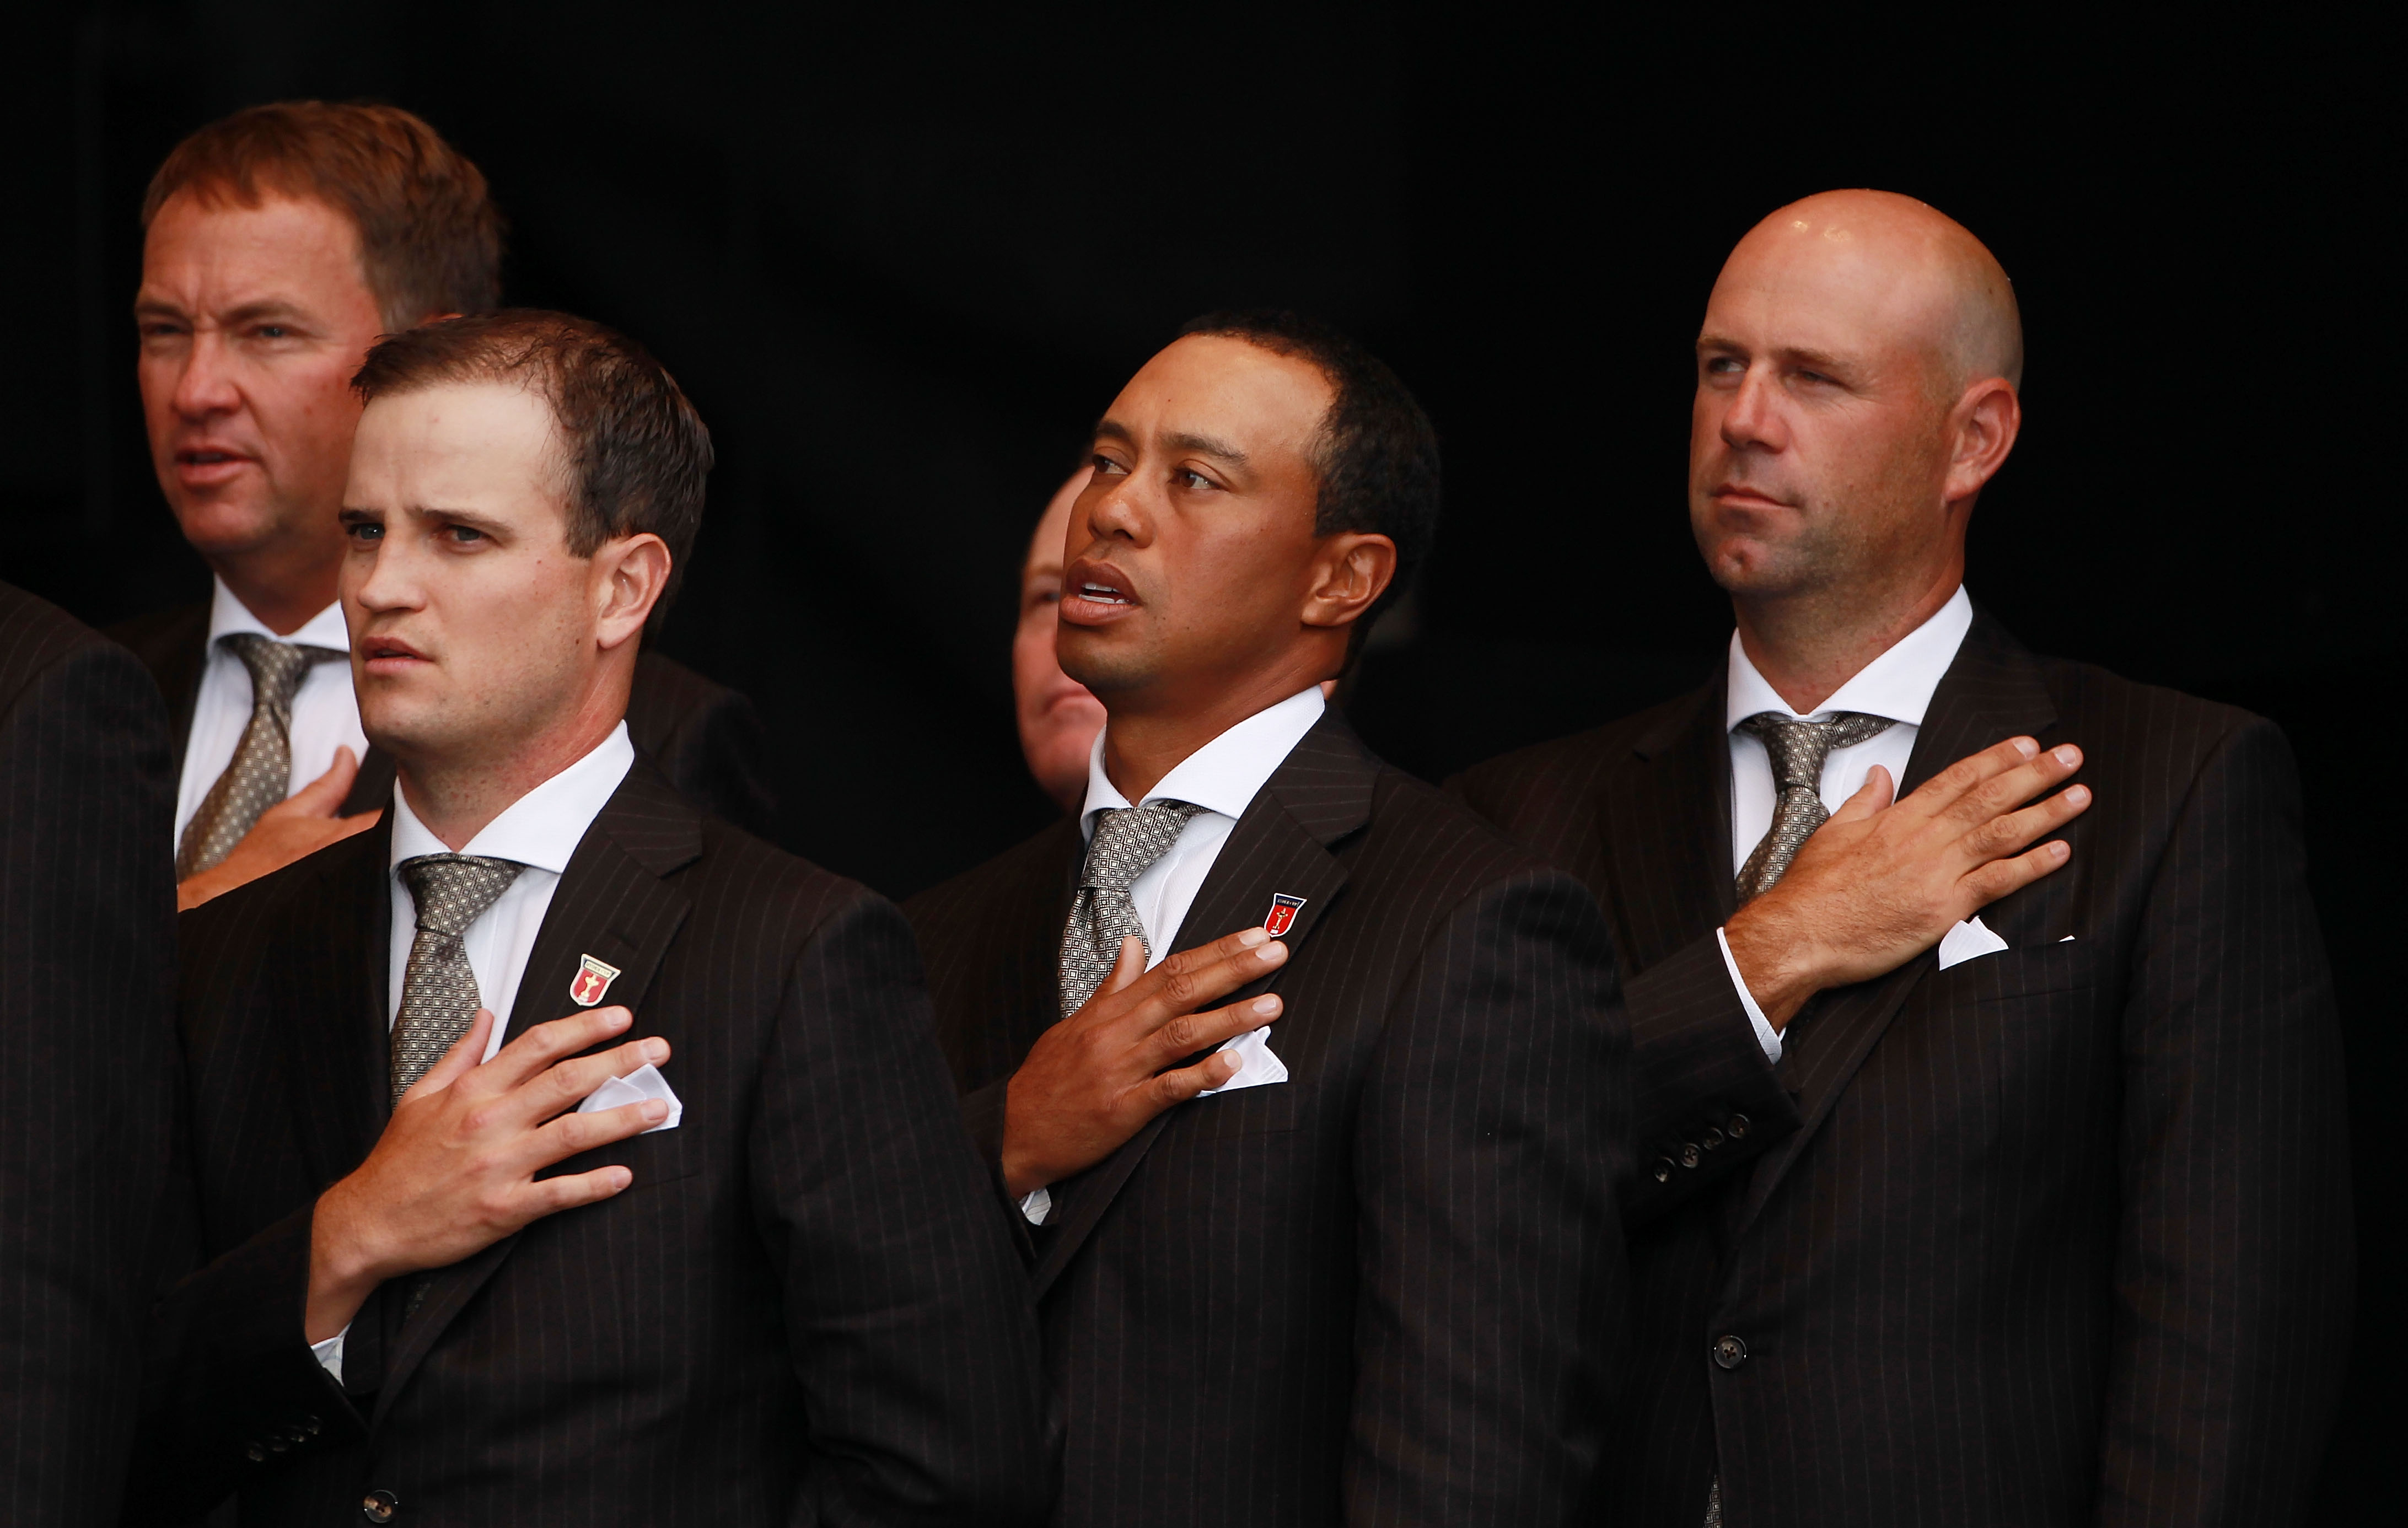 NEWPORT, WALES - SEPTEMBER 30:  Zach Johnson (L) , Tiger Woods and Stewart Cink of the USA (R) stand for their national anthem during the Opening Ceremony prior to the 2010 Ryder Cup at the Celtic Manor Resort on September 30, 2010 in Newport, Wales.  (Ph